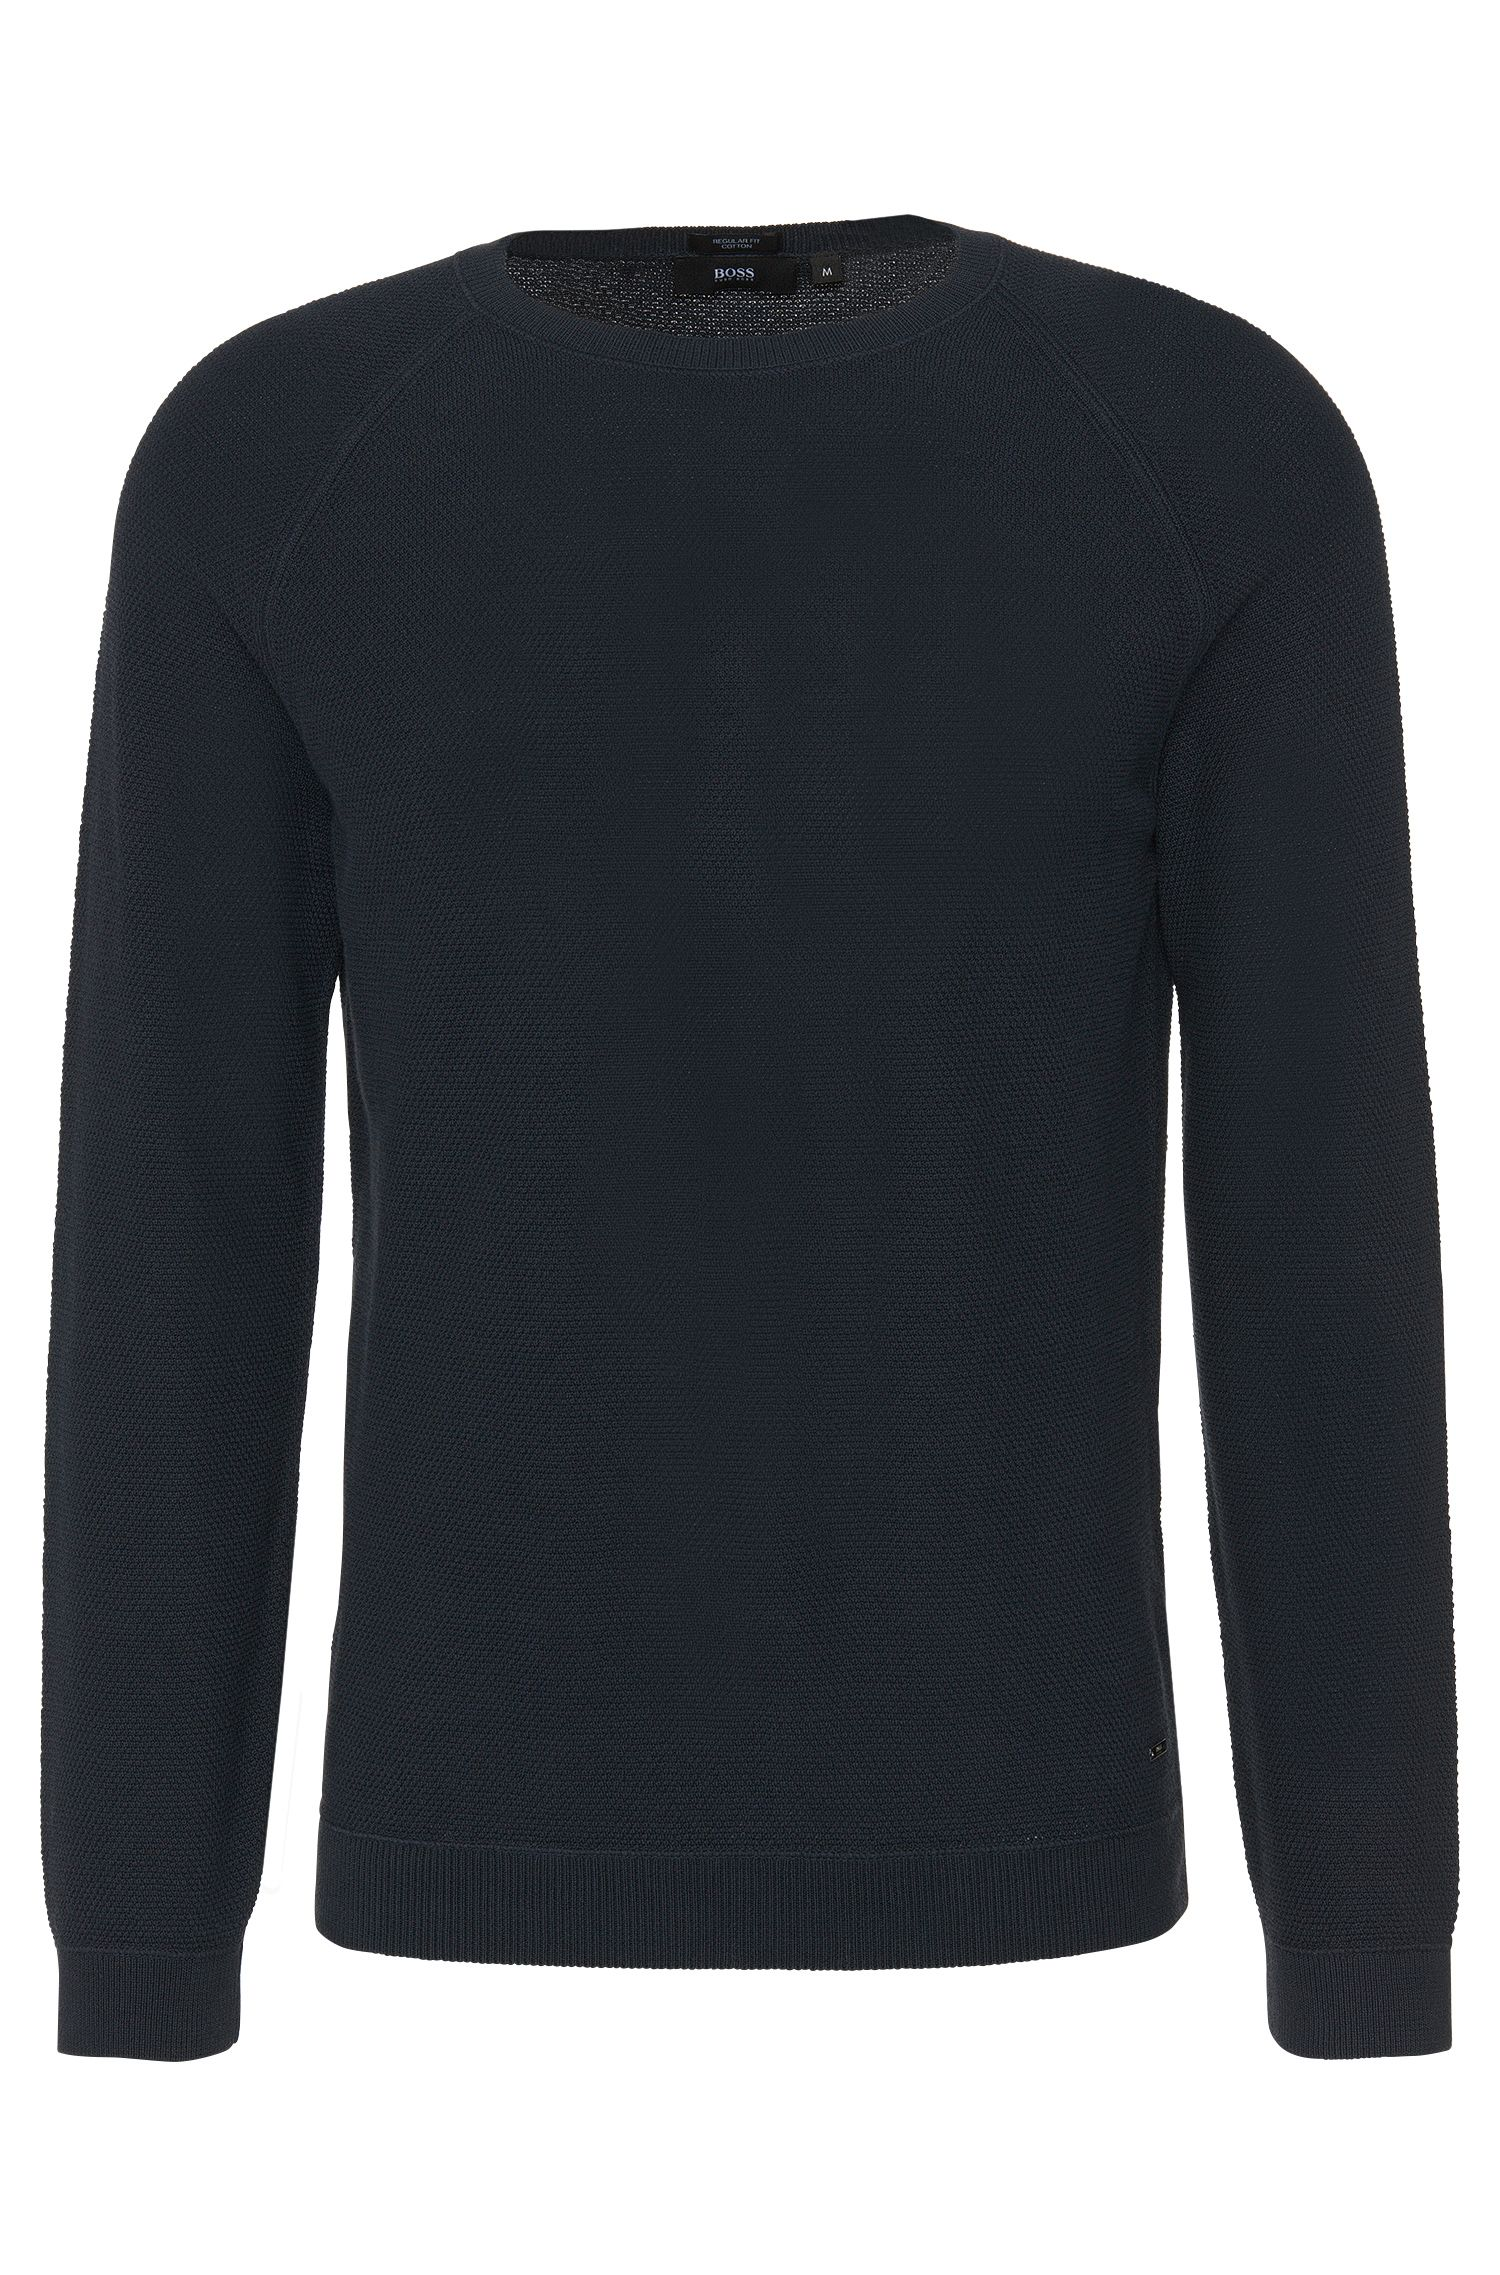 Unifarbener Regular-Fit Pullover aus Baumwolle: 'Ilian'